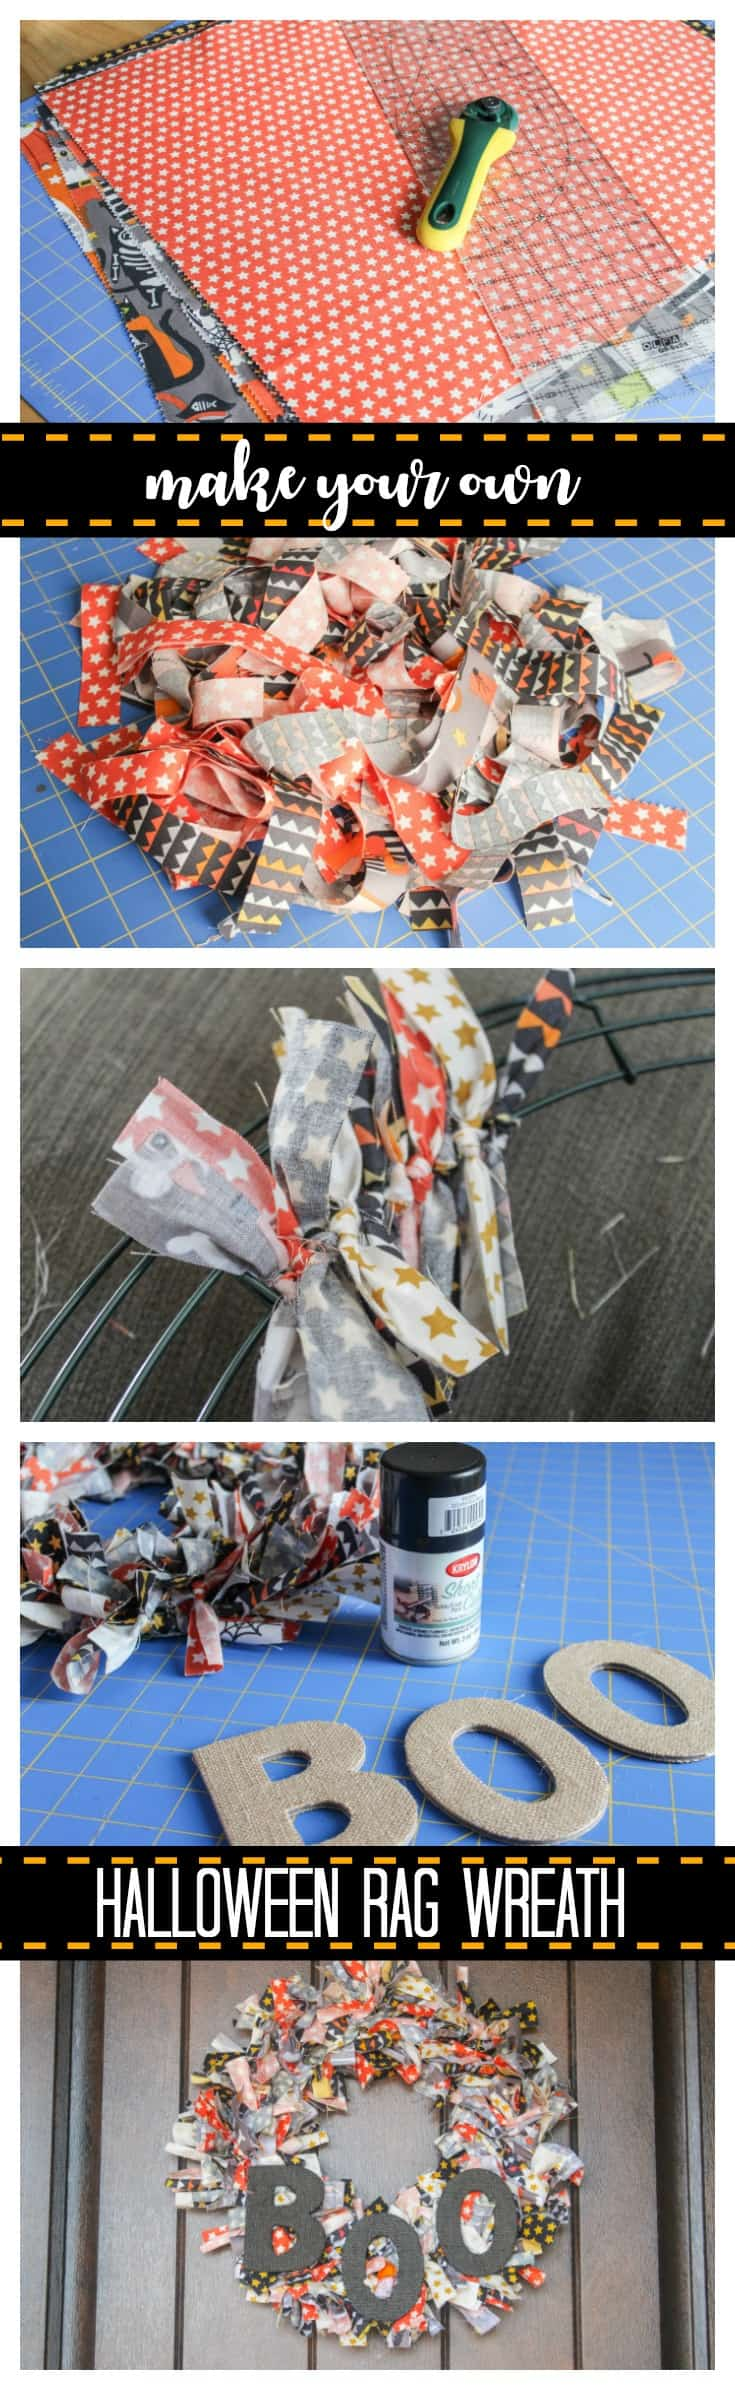 Make your own Halloween Rag Wreath!